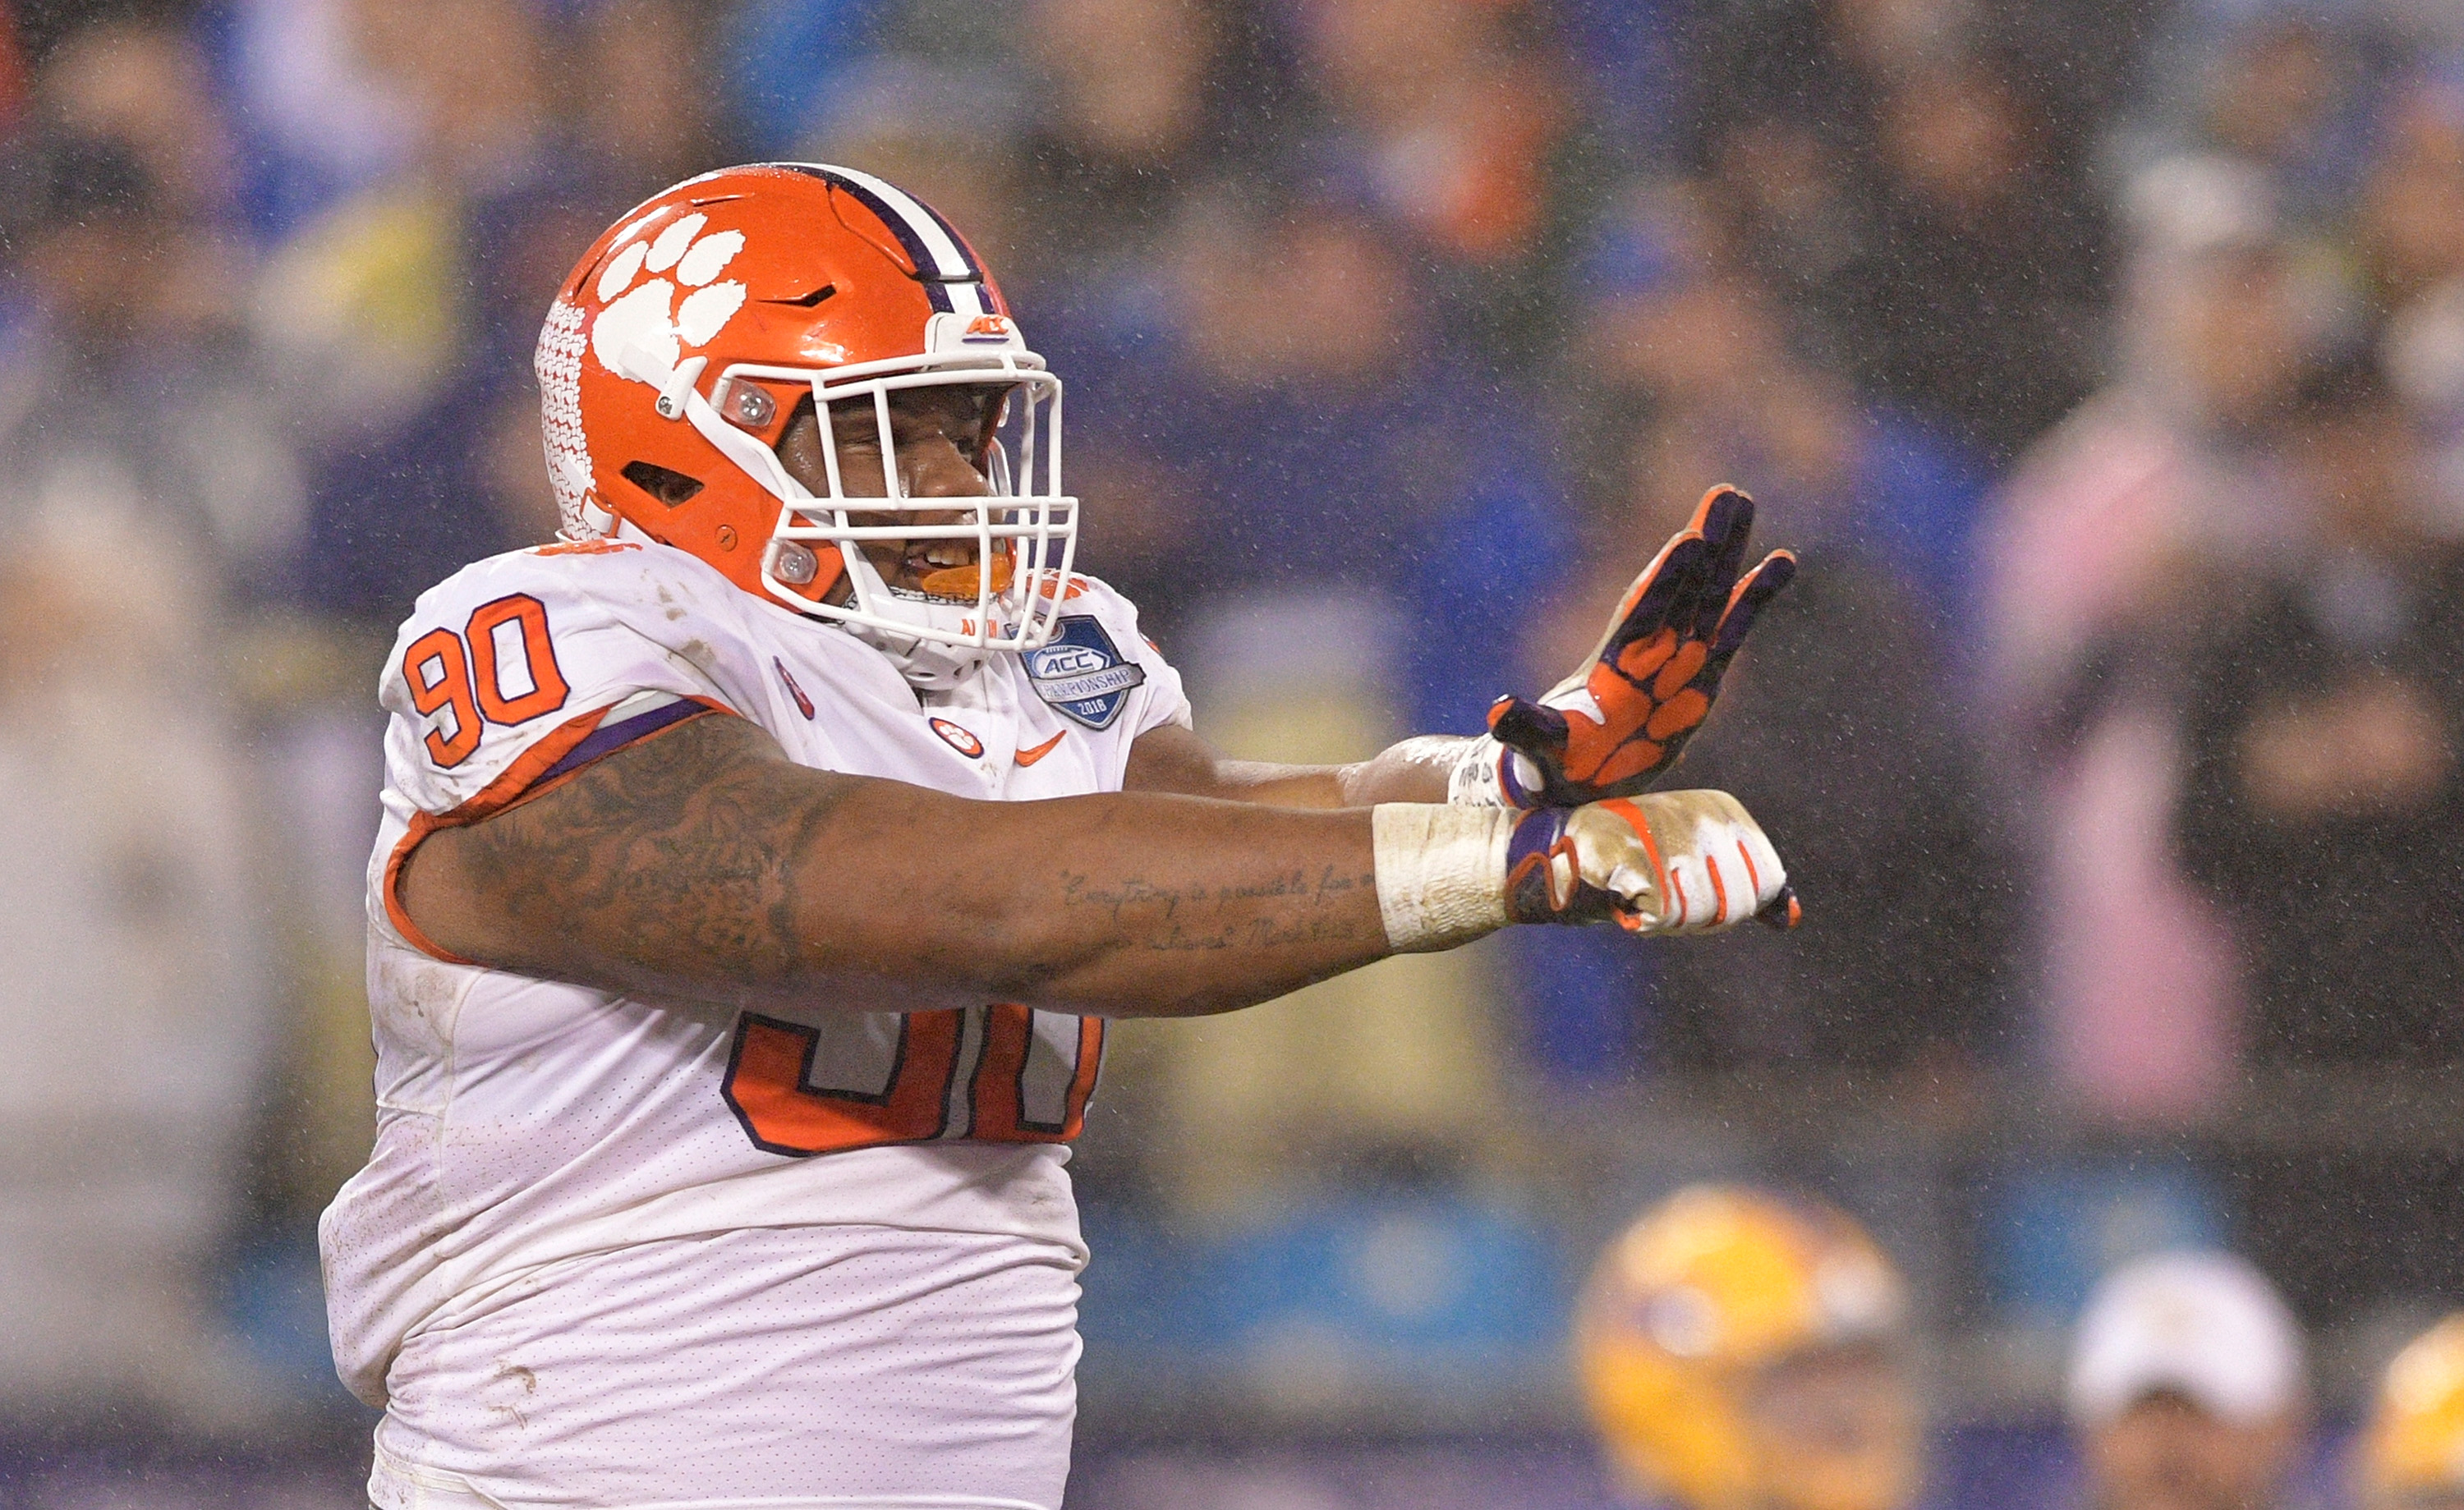 Clemson Tigers DL Dexter Lawrence reacts against the Pittsburgh Panthers, Dec. 1, 2018.